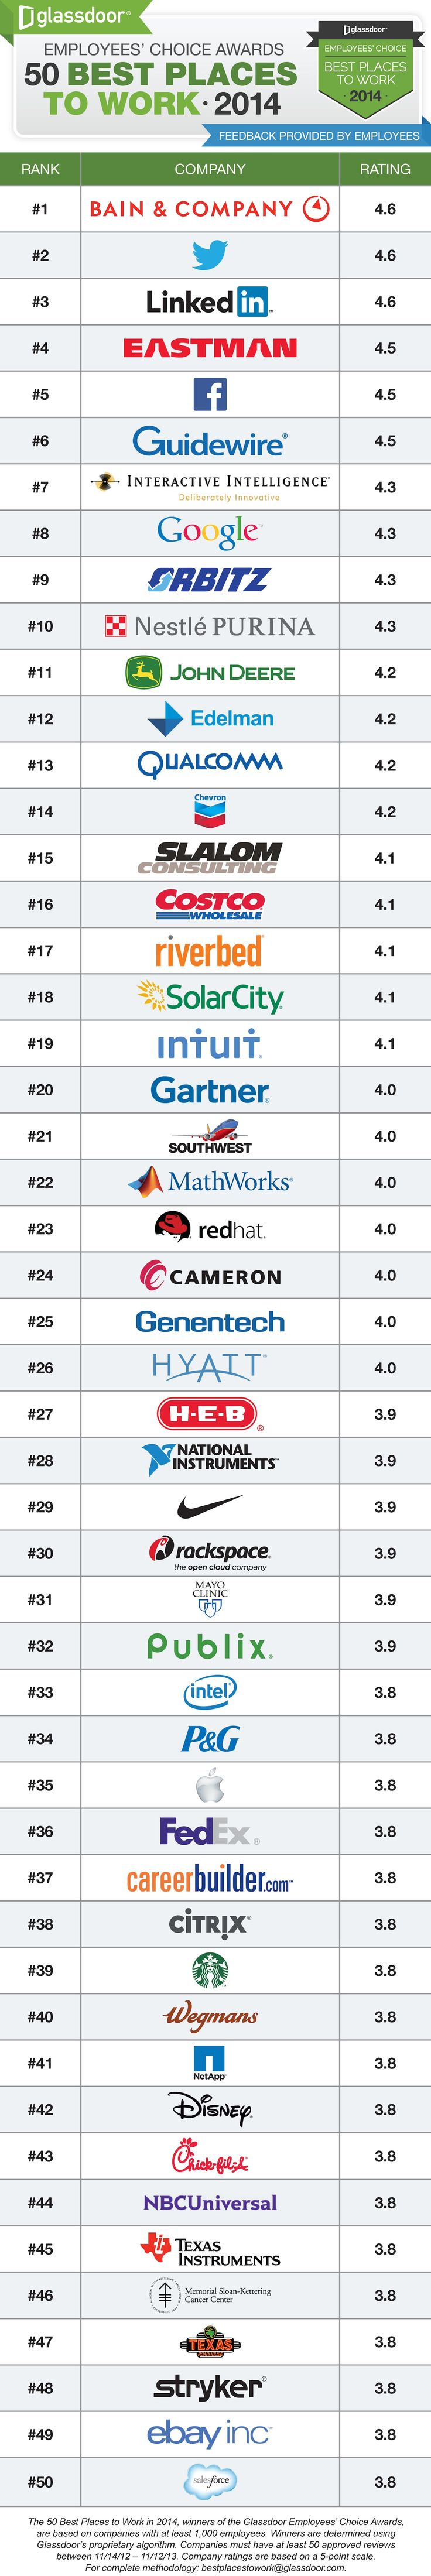 best images about employer branding to work i which are the best companies to work for in 2014 employerbrand